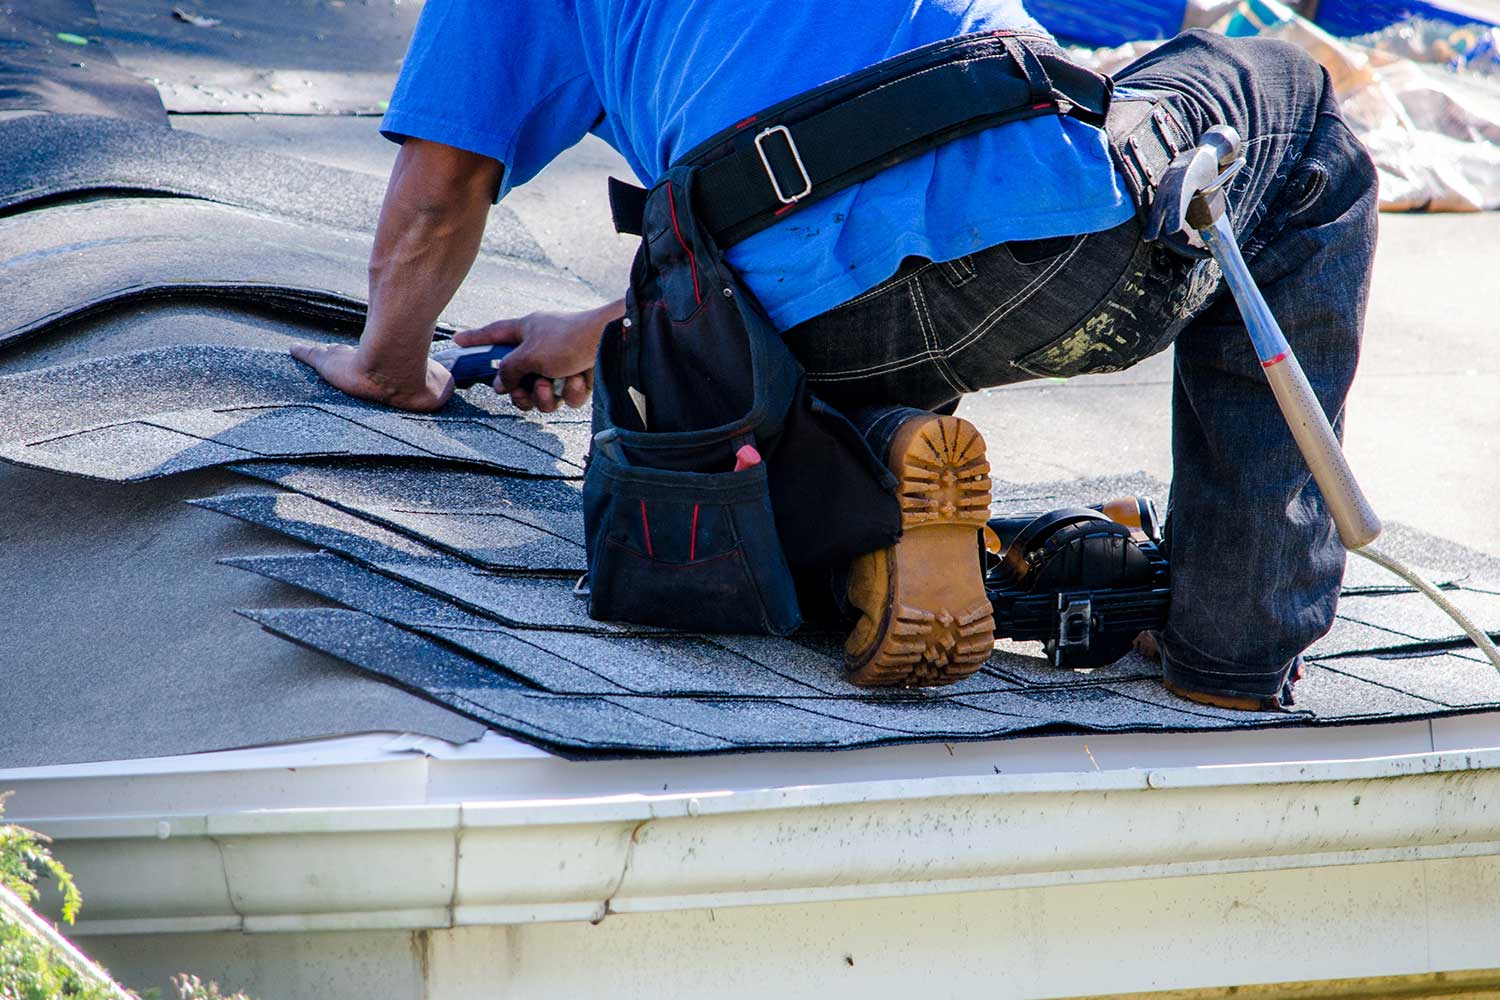 roofer working on a home rooftop